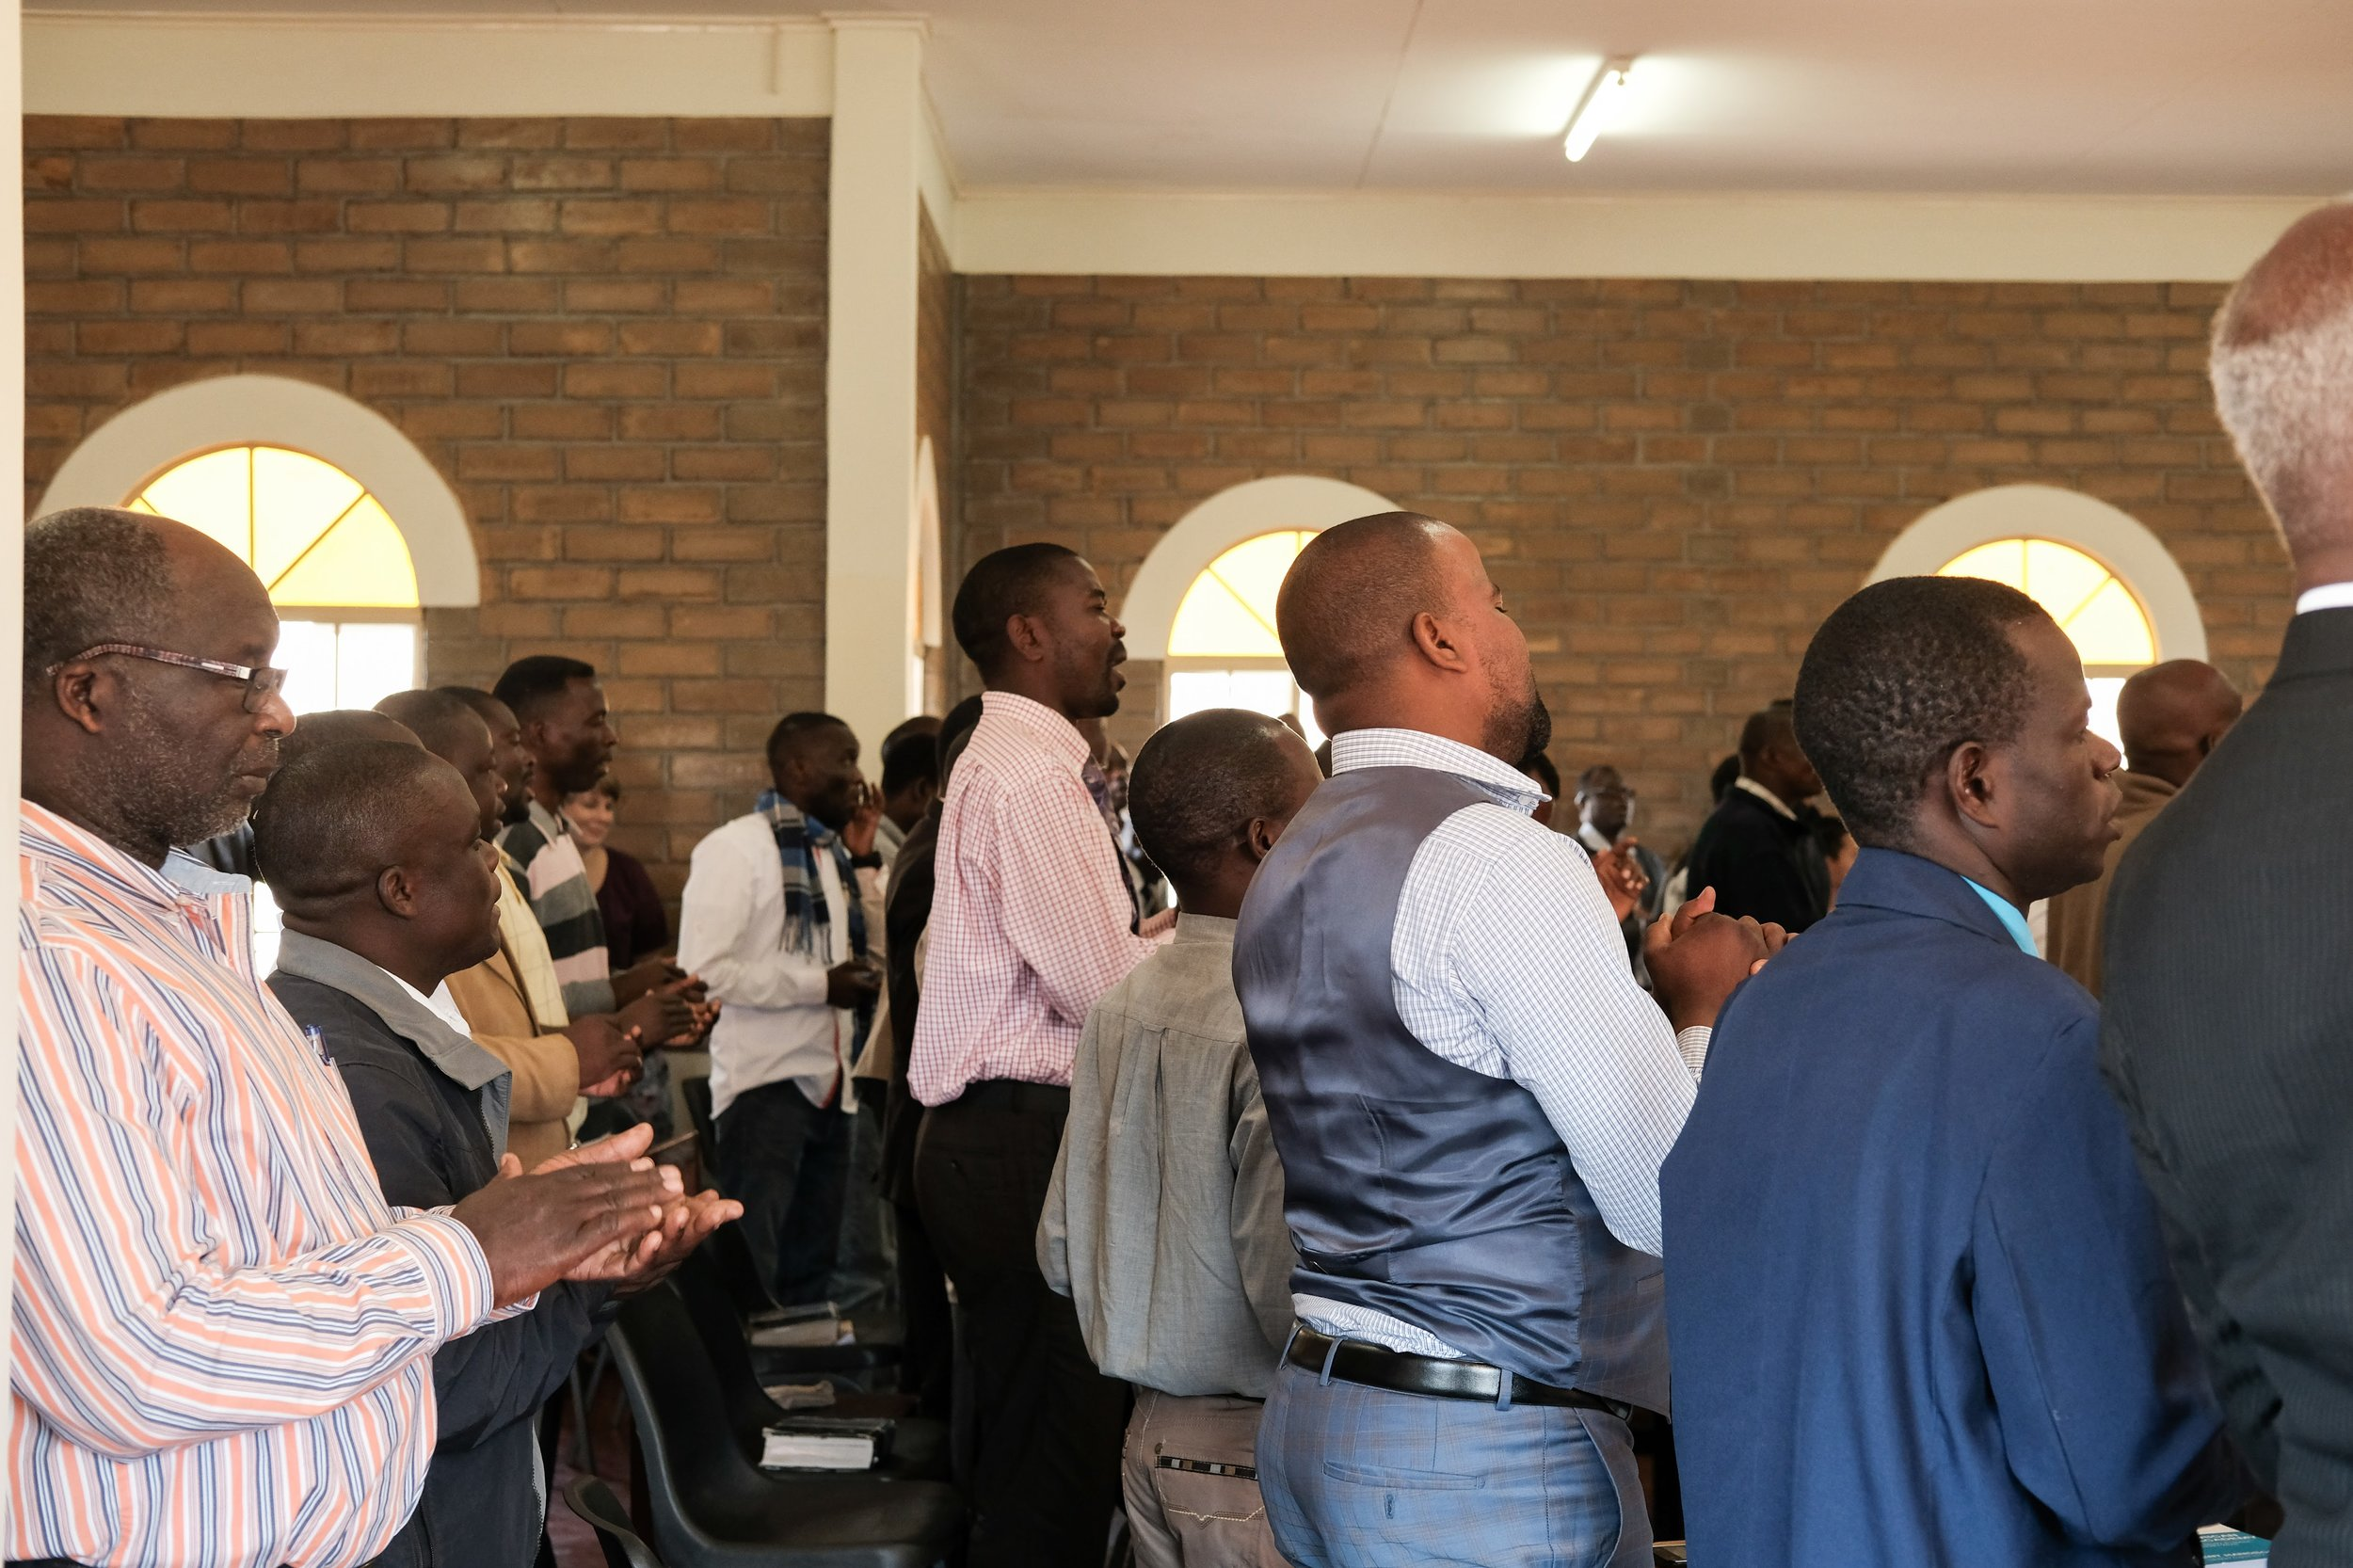 Students sing traditional Malawian worship music to praise God during chapel.